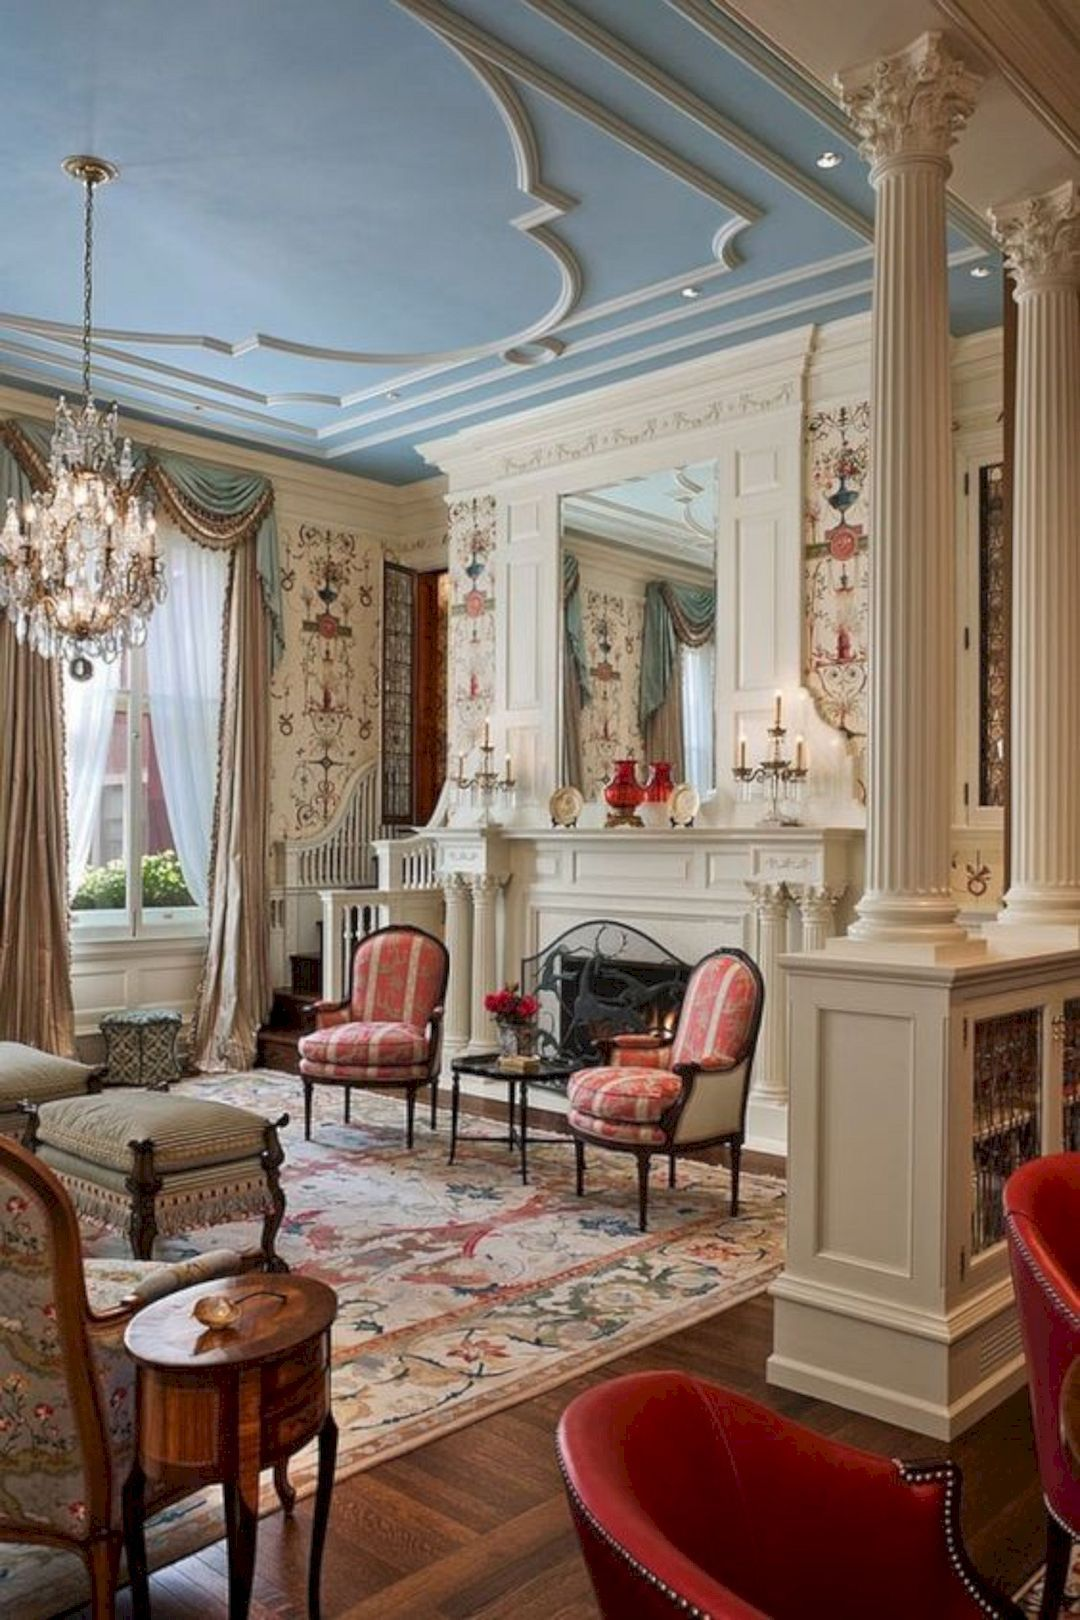 15 interior design ideas for a victorian themed home https www